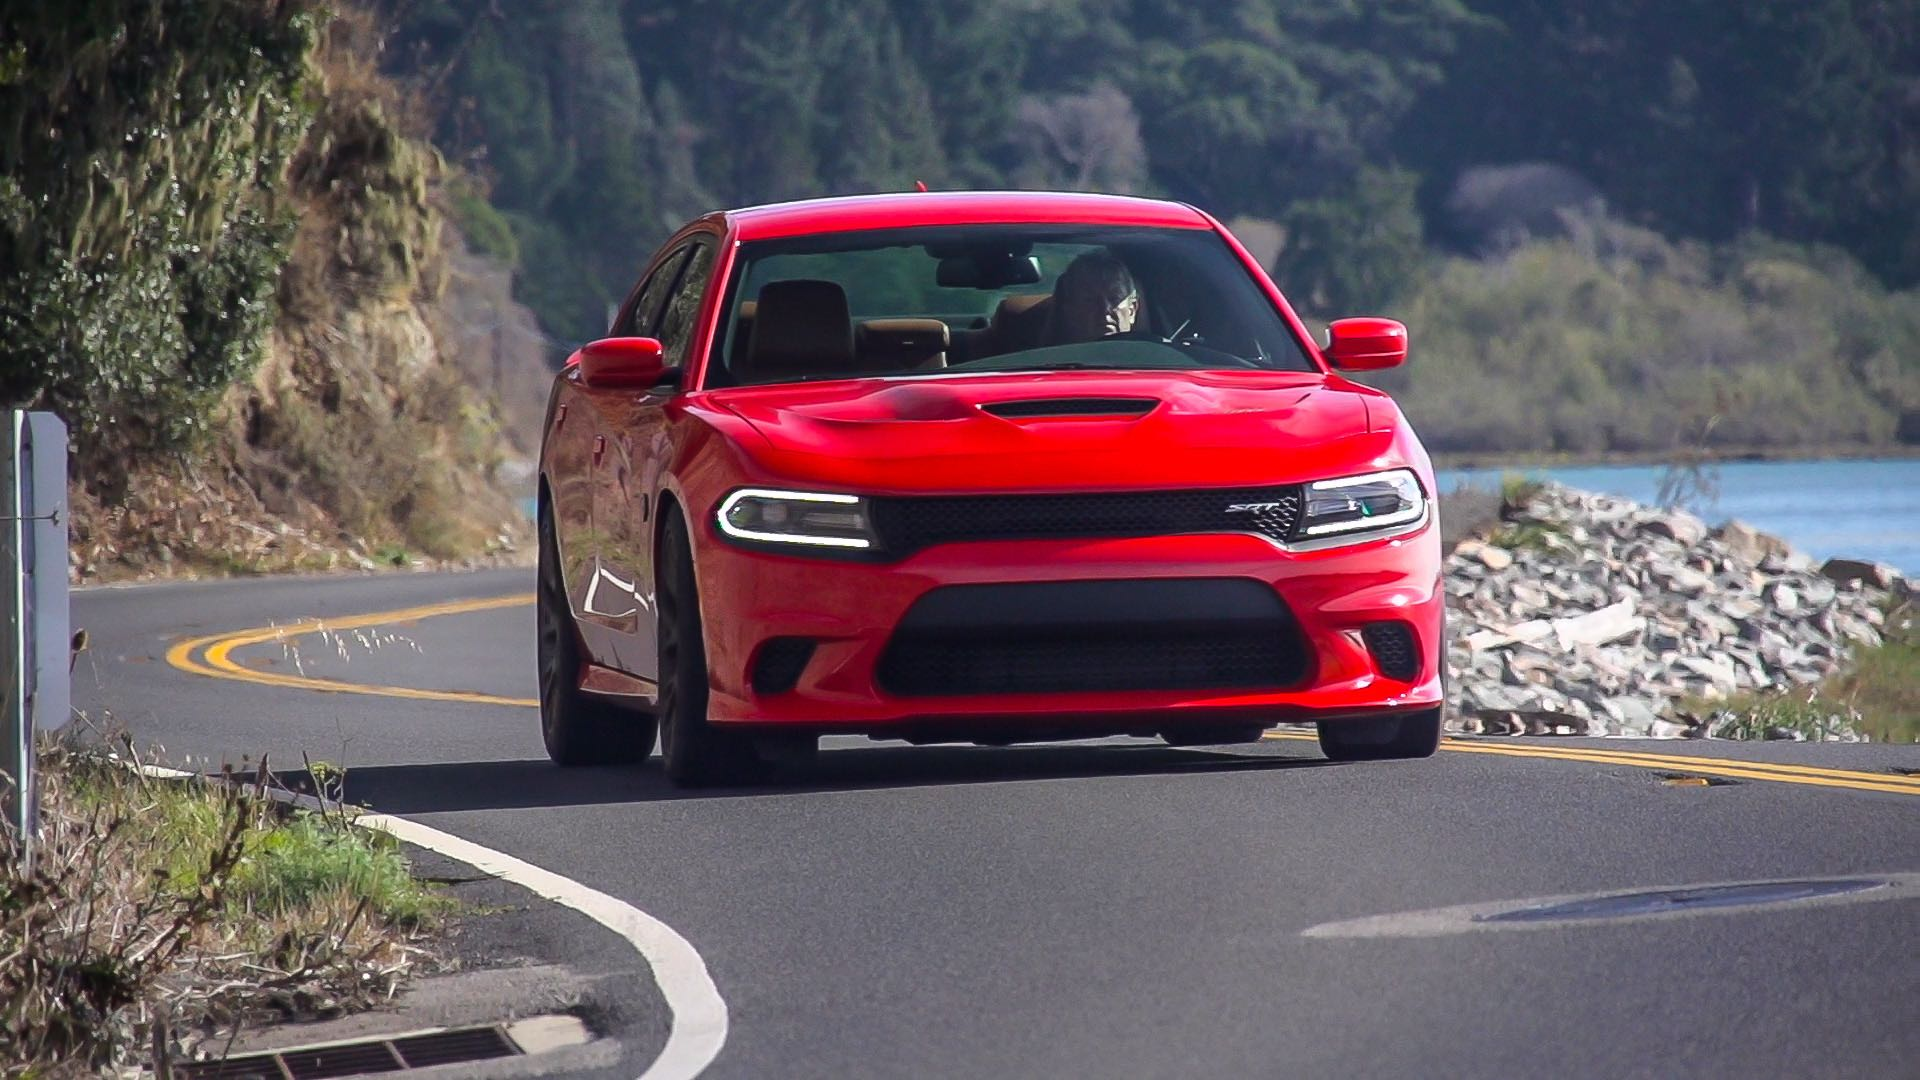 Dodge Charger Srt Hellcat Review Caradvice